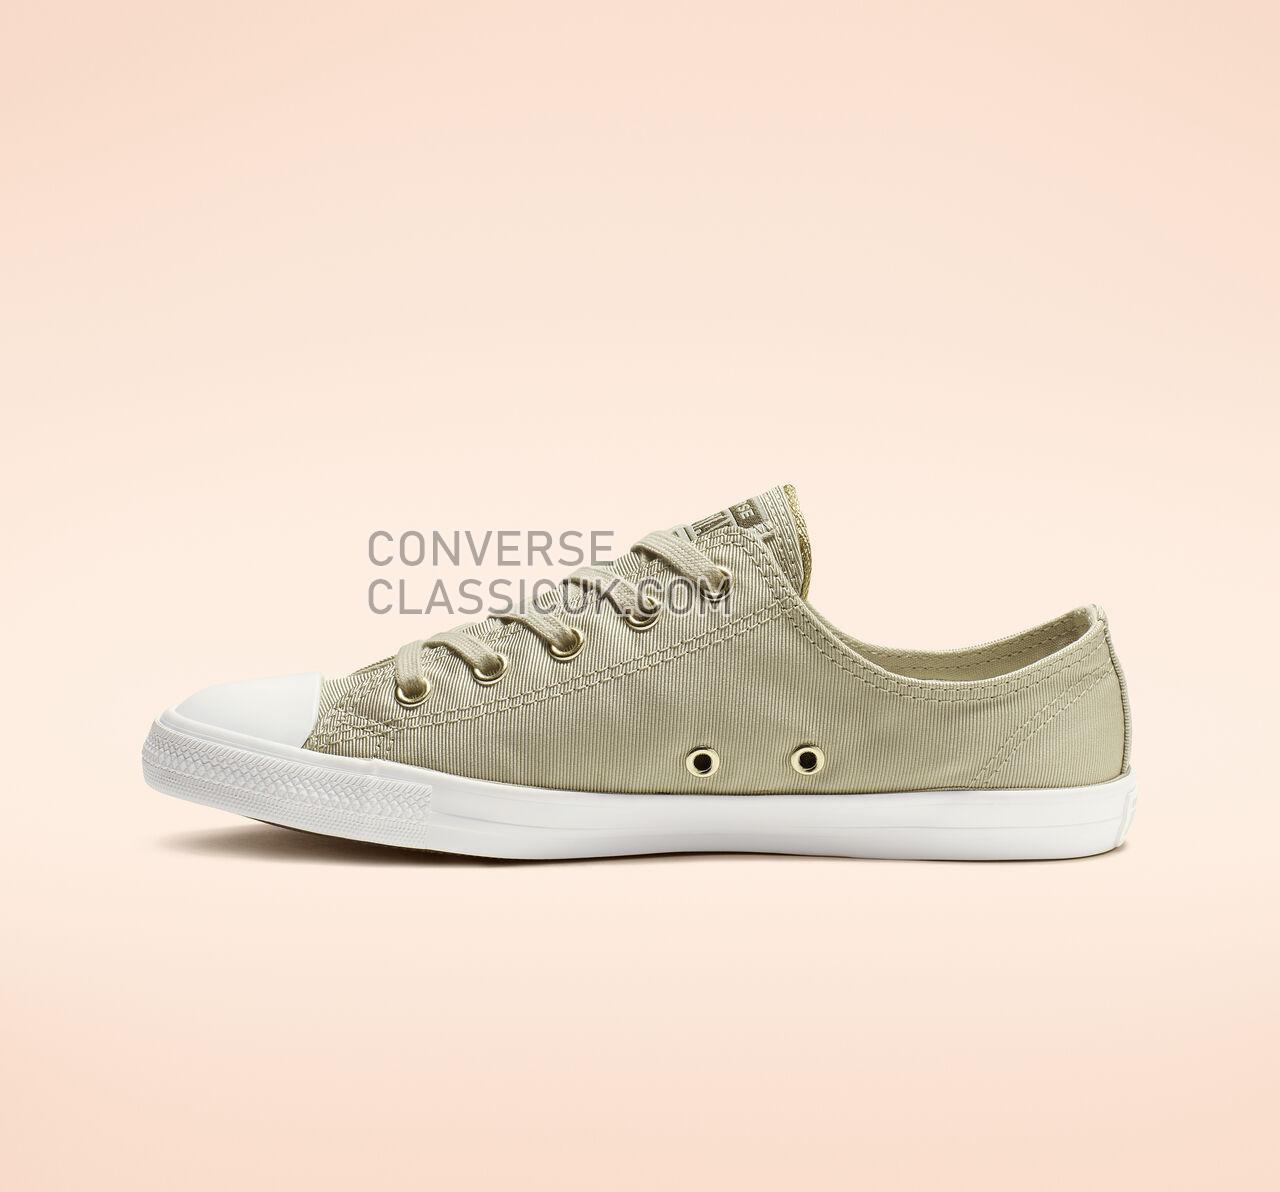 Converse Chuck Taylor All Star Dainty Low Top Womens 564307F Light Surplus/Field Surplus Shoes